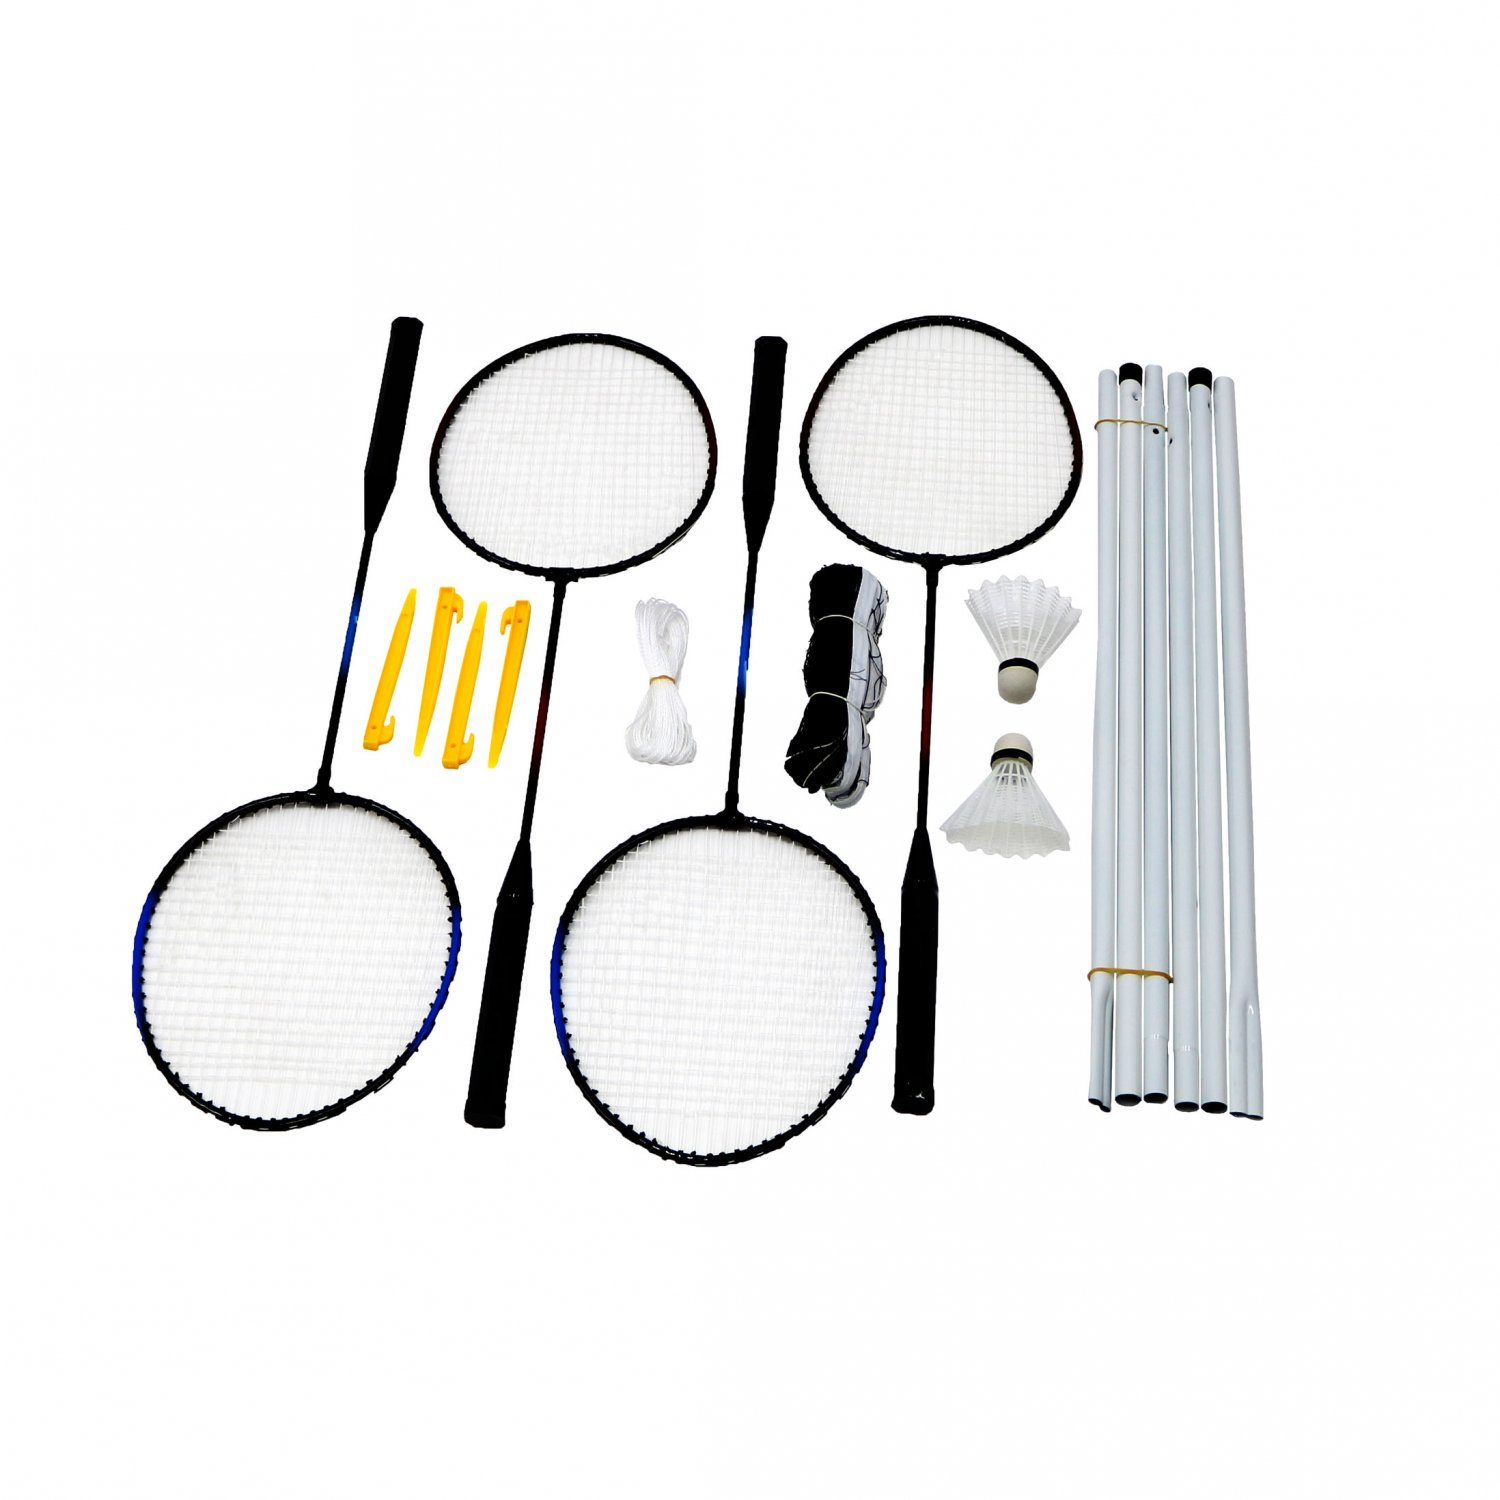 4 Player Badminton Set w/ Racket, Net, Shuttlecocks & Carry Bag